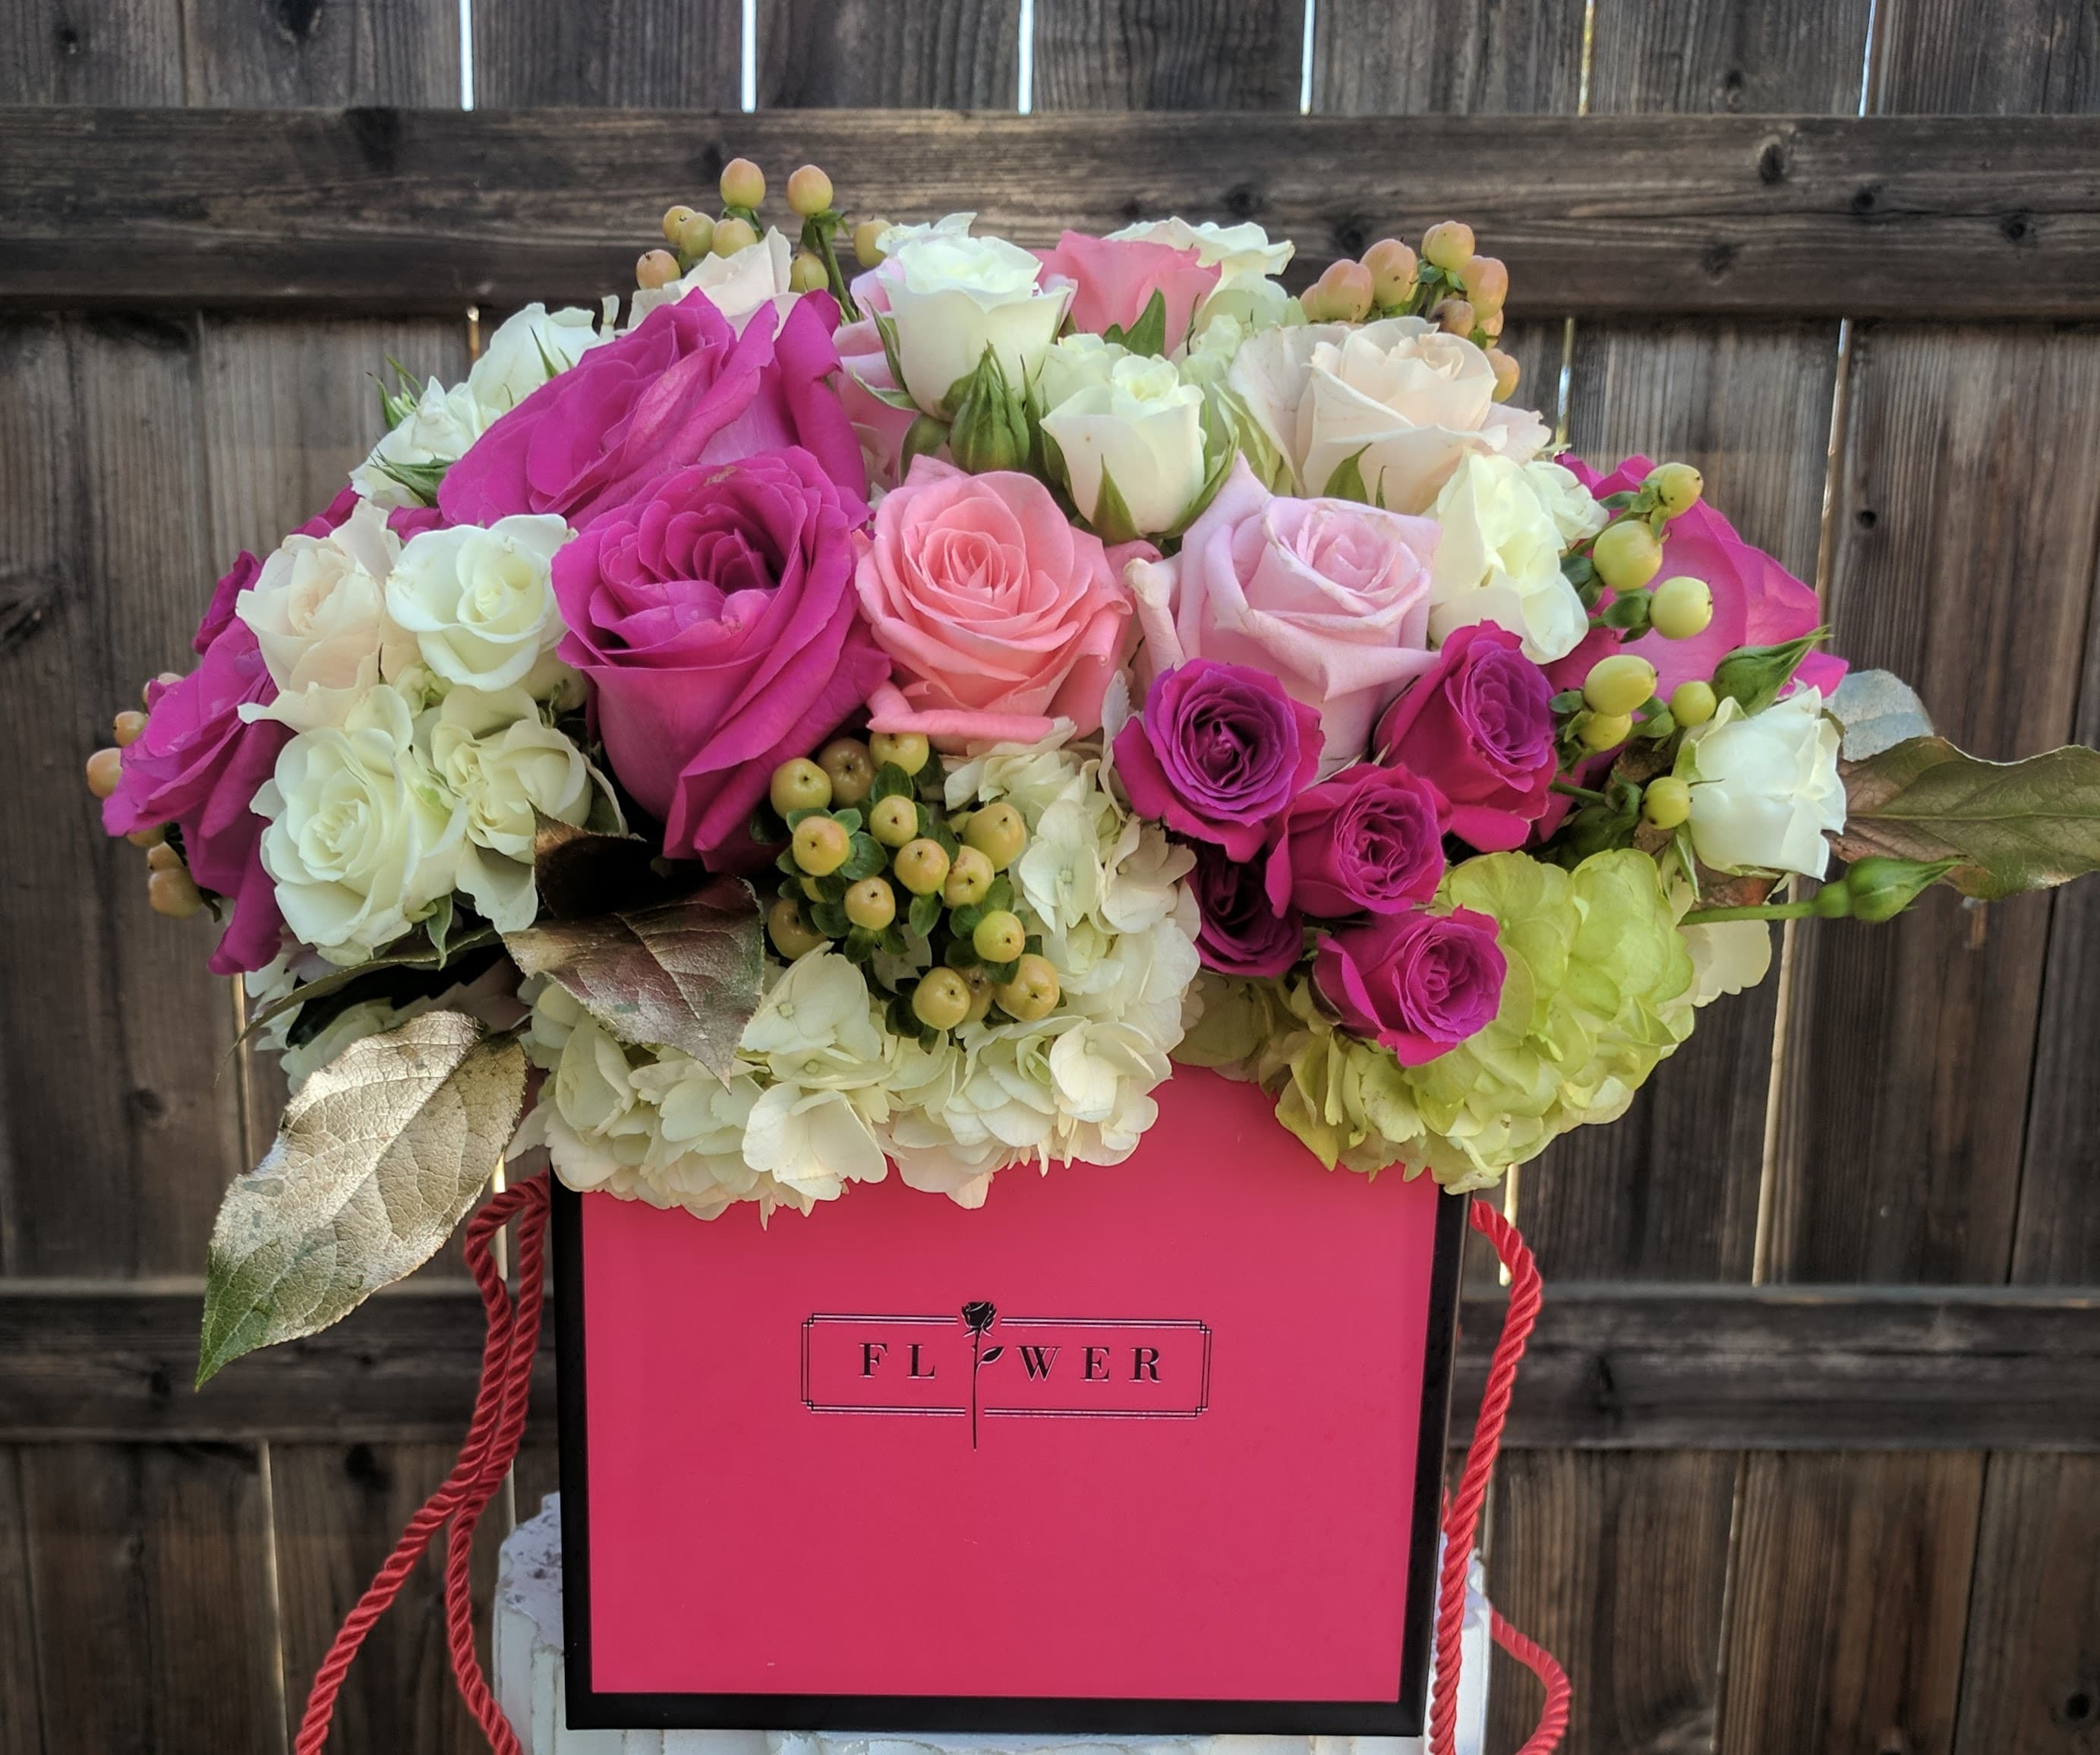 Fabulous Flower Box Let Us Pick The Prettiest One For Your Special Order In Van Nuys Ca Van Nuys Flower Shop